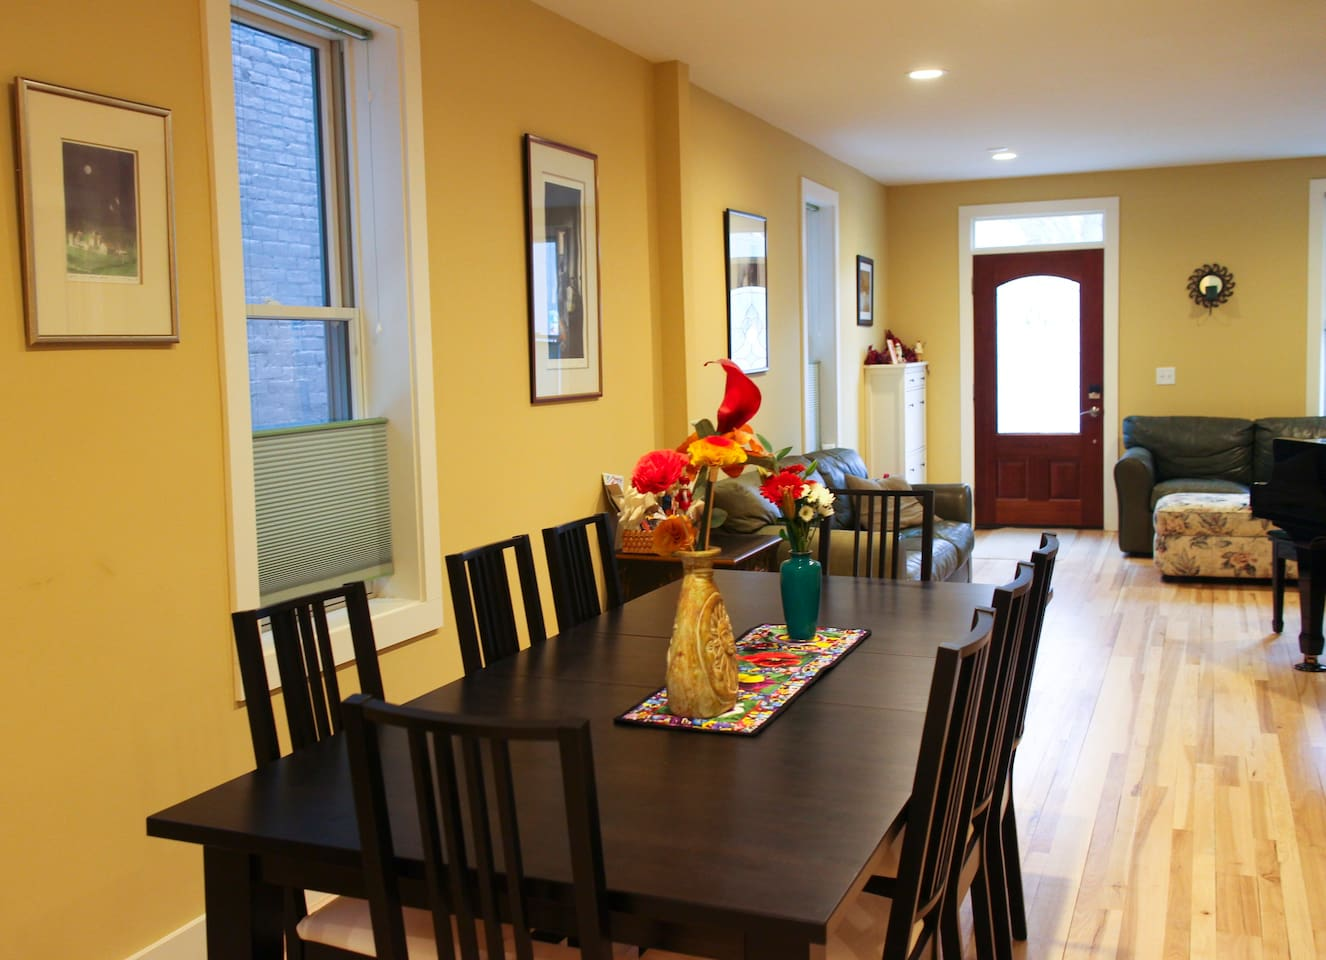 First floor living and dining areas have beautiful wood floors, and natural light.  The grand piano beckons you to play. Make yourself at home!